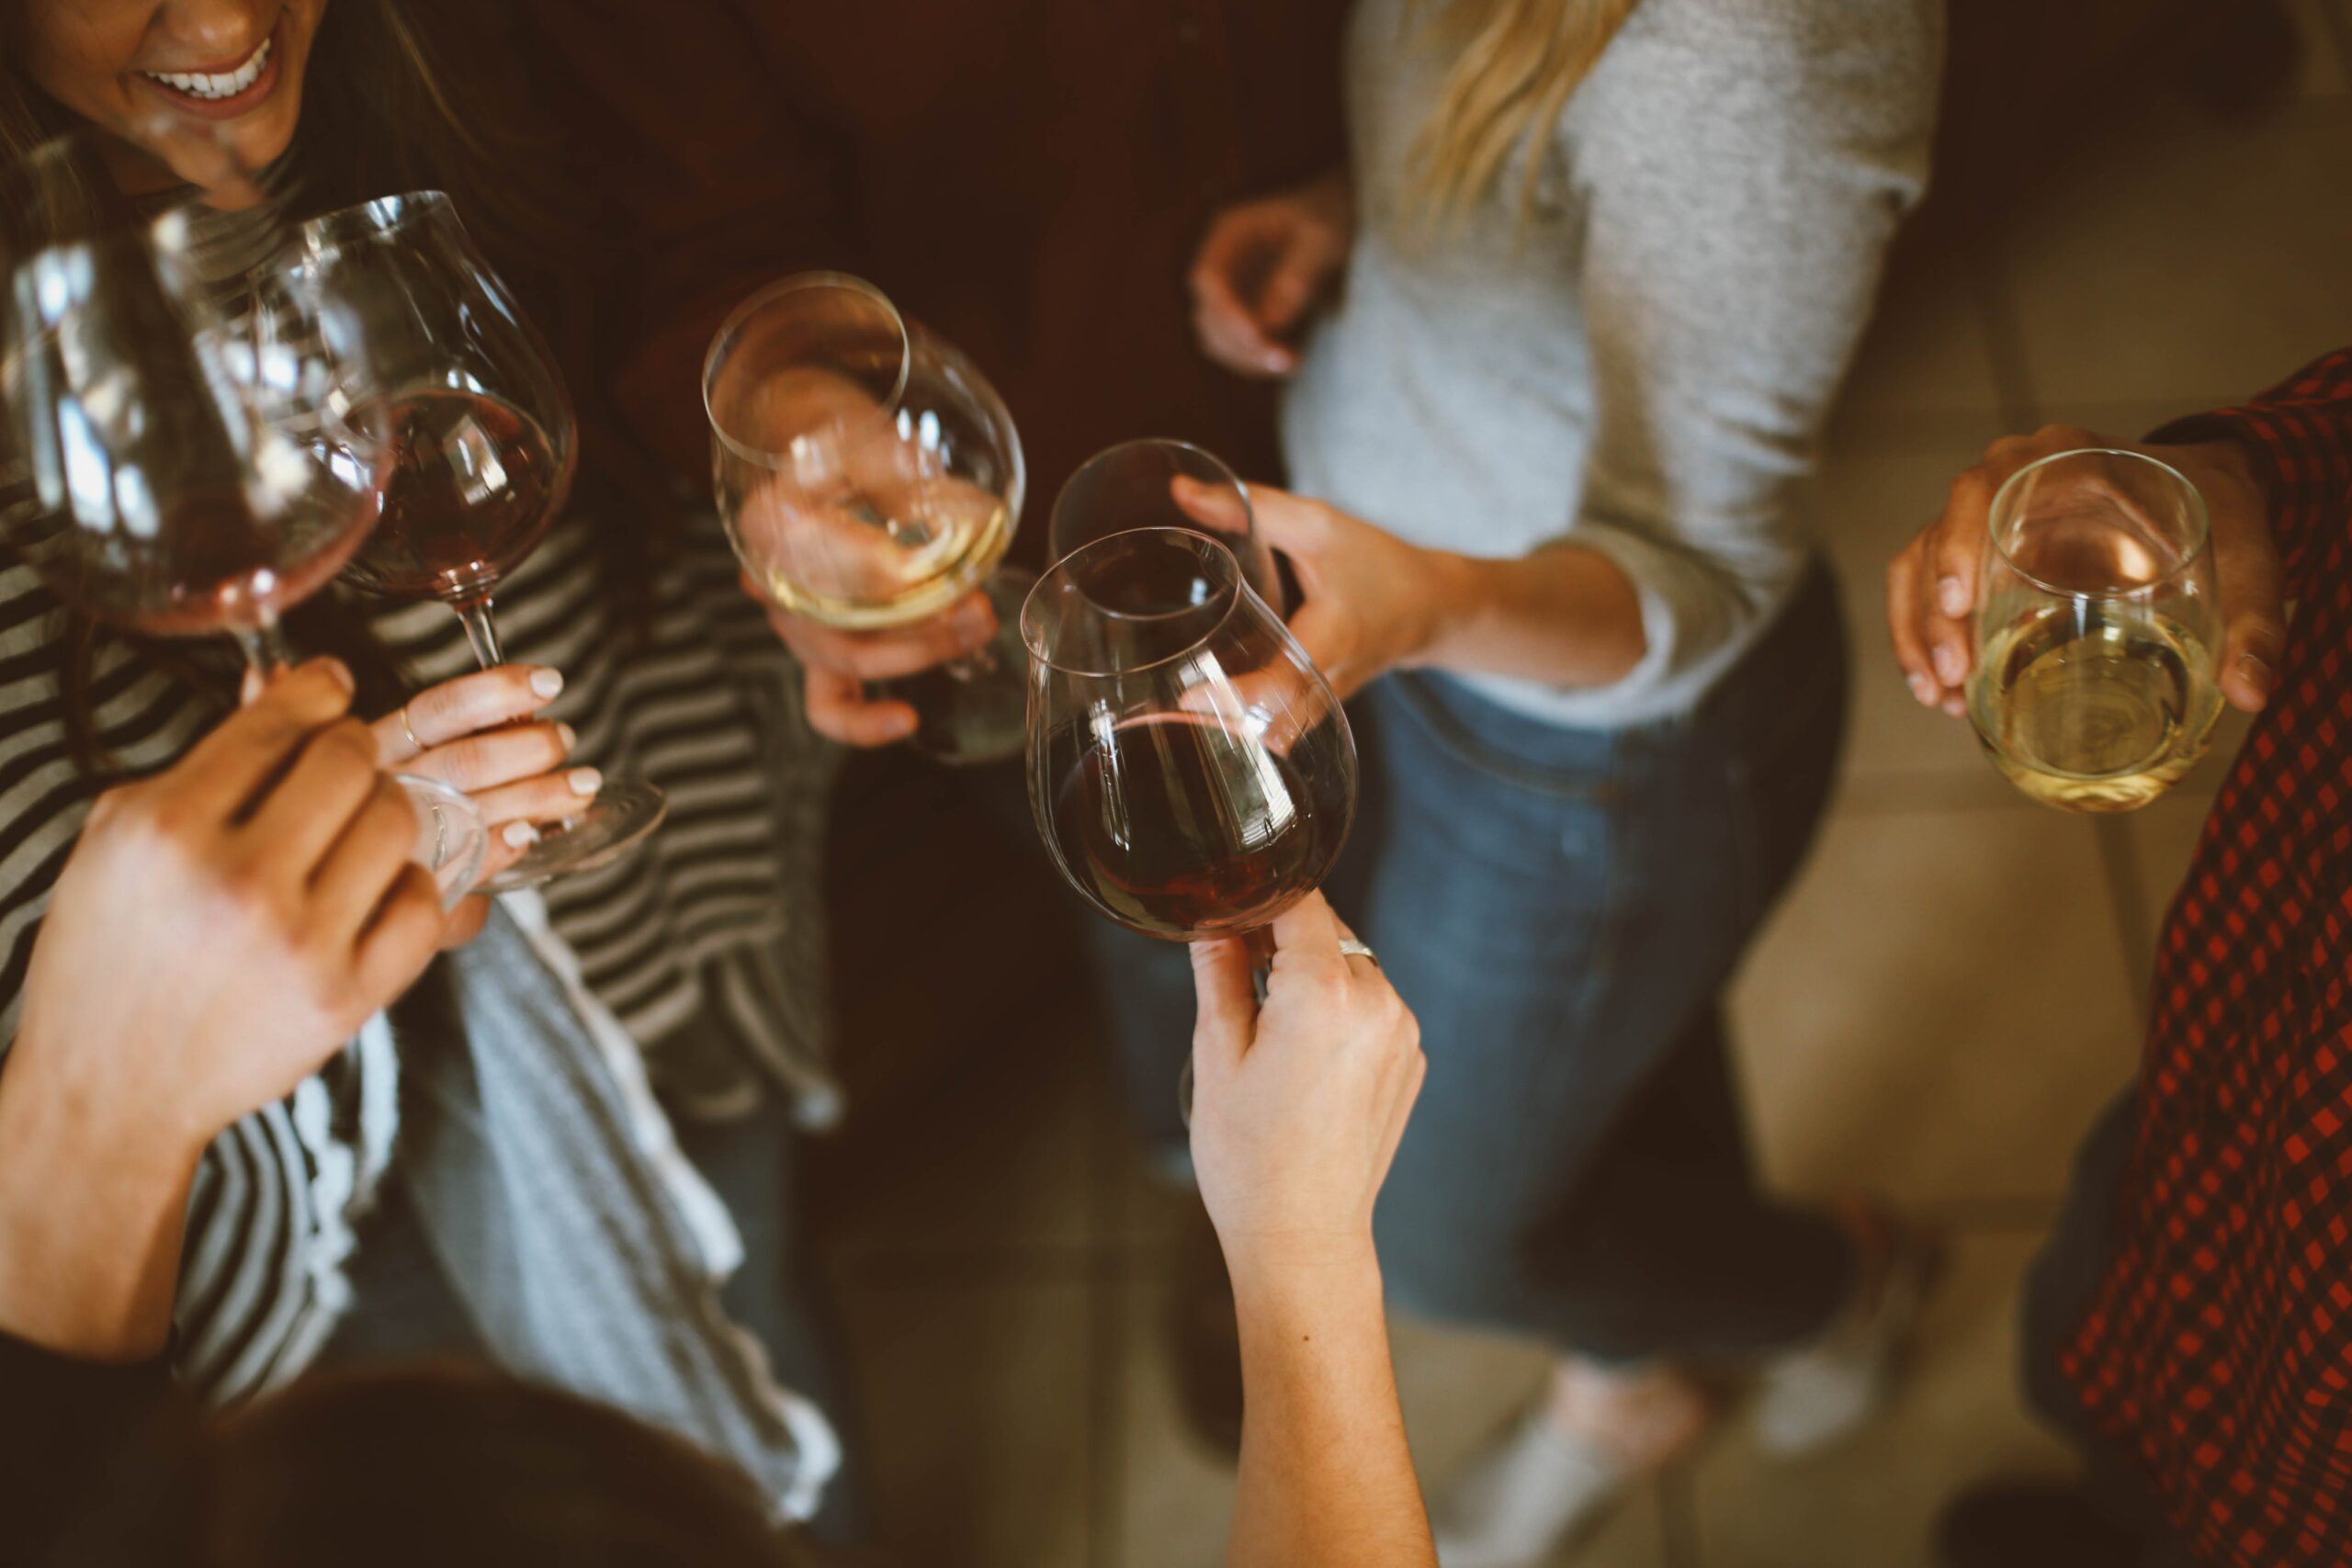 Why New Jersey Residents Can't Get Wine Shipped To Them